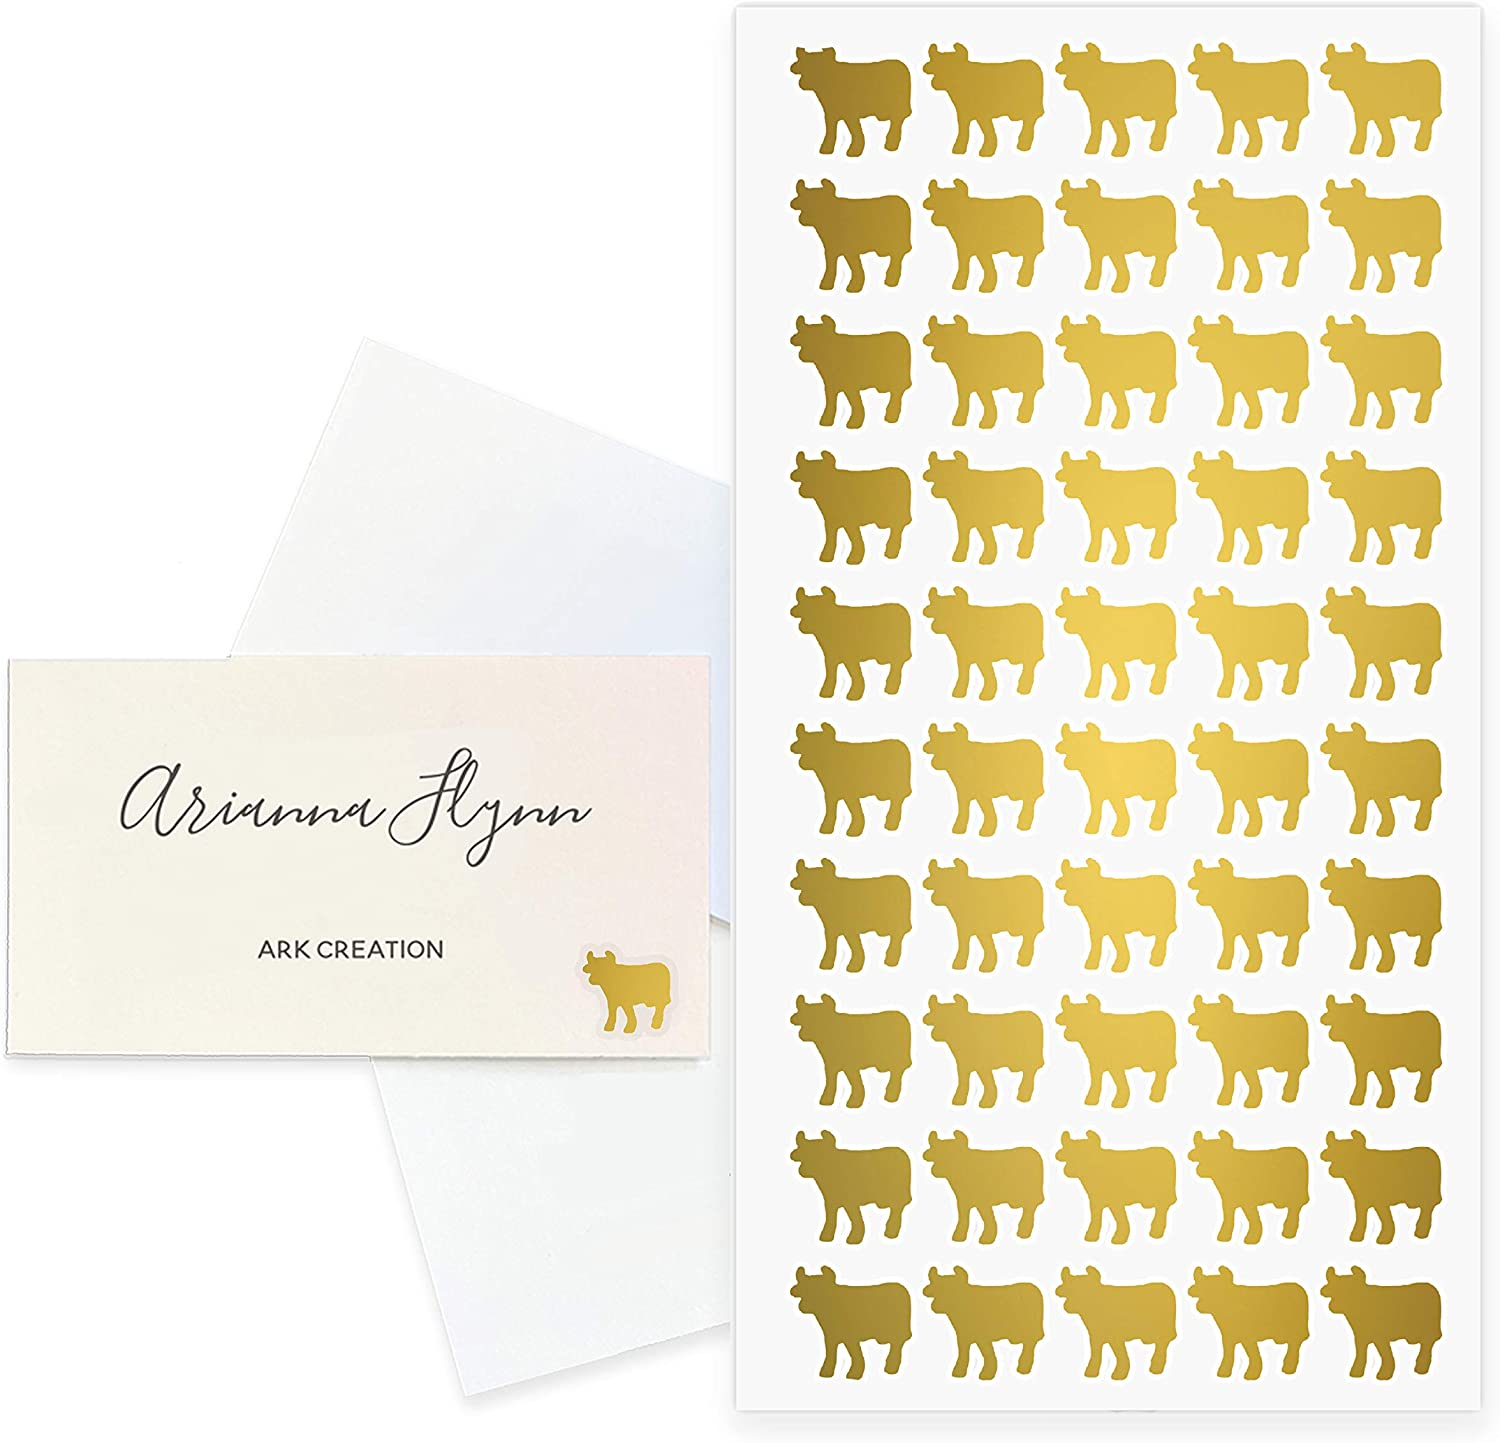 ARK Creation 50 Wedding Meal Stickers for Place Cards - Place Card Menu Choices - Wedding Meal Choice Stickers (Gold, Beef)